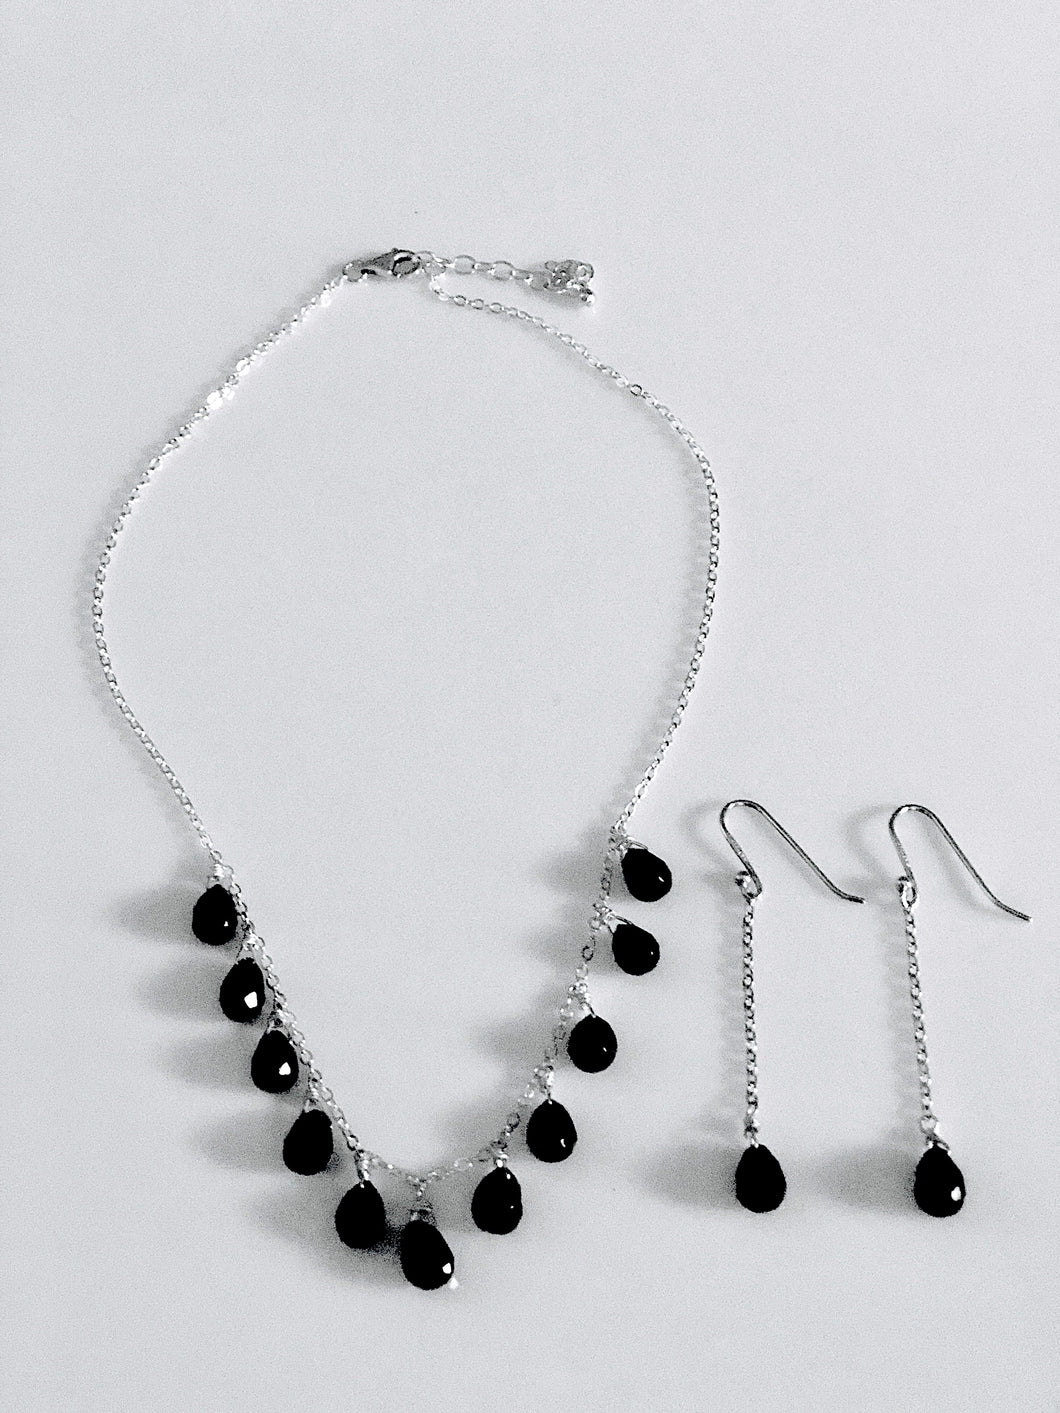 Sterling Silver Briolette Onyx Pendants Necklace and Earrings